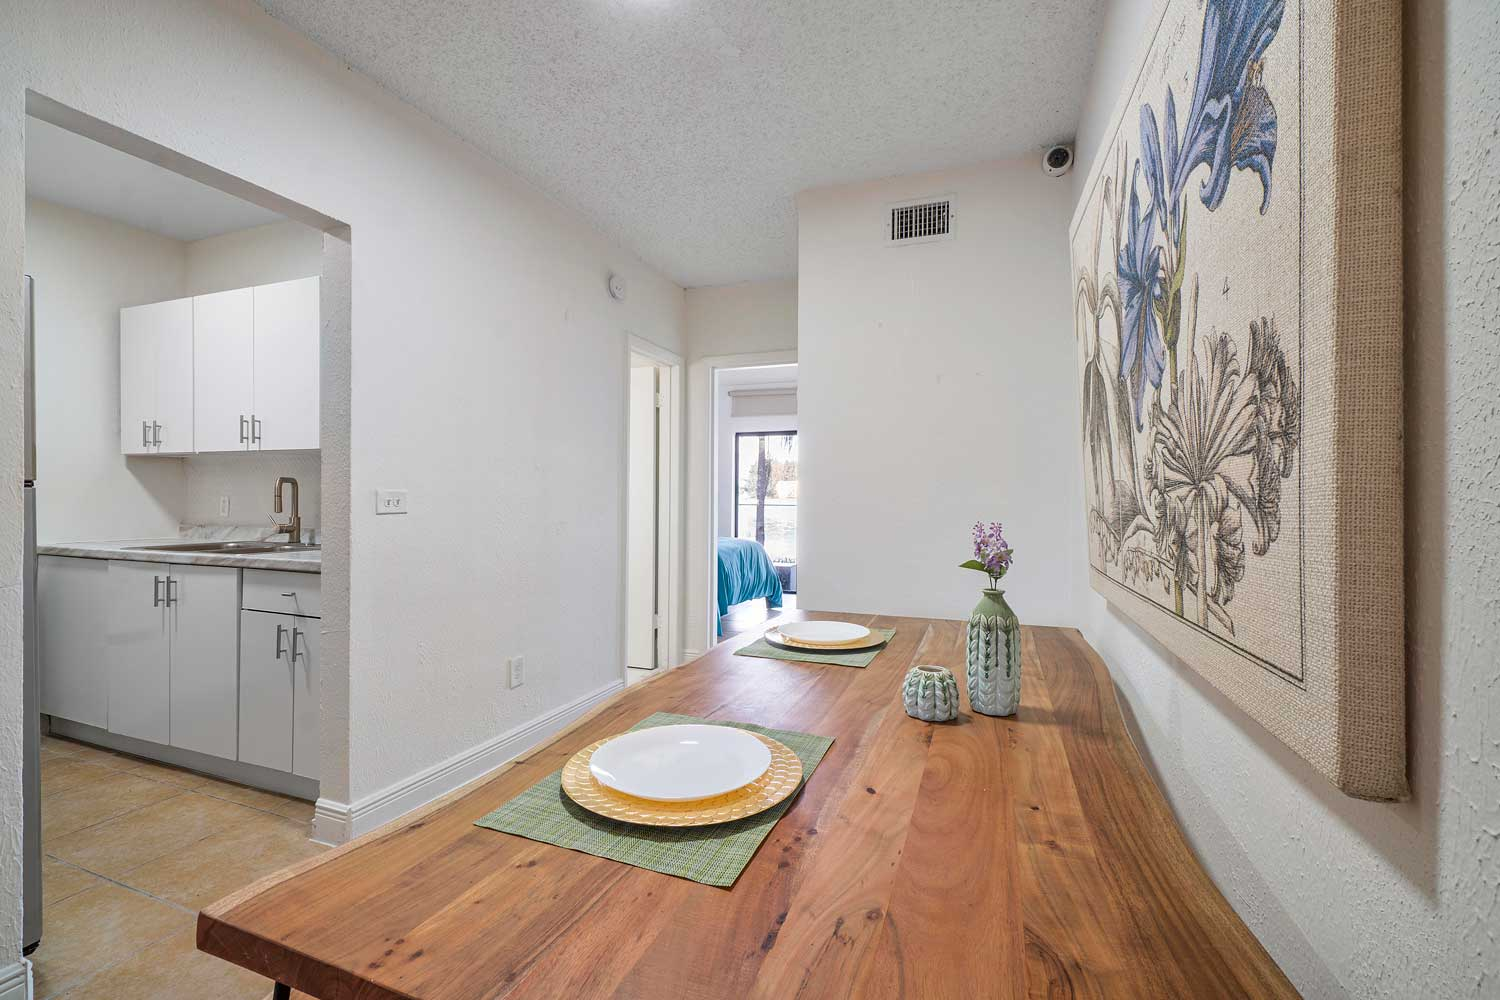 Wood Dining Table at New Castle Lake Apartments in Miami, FL